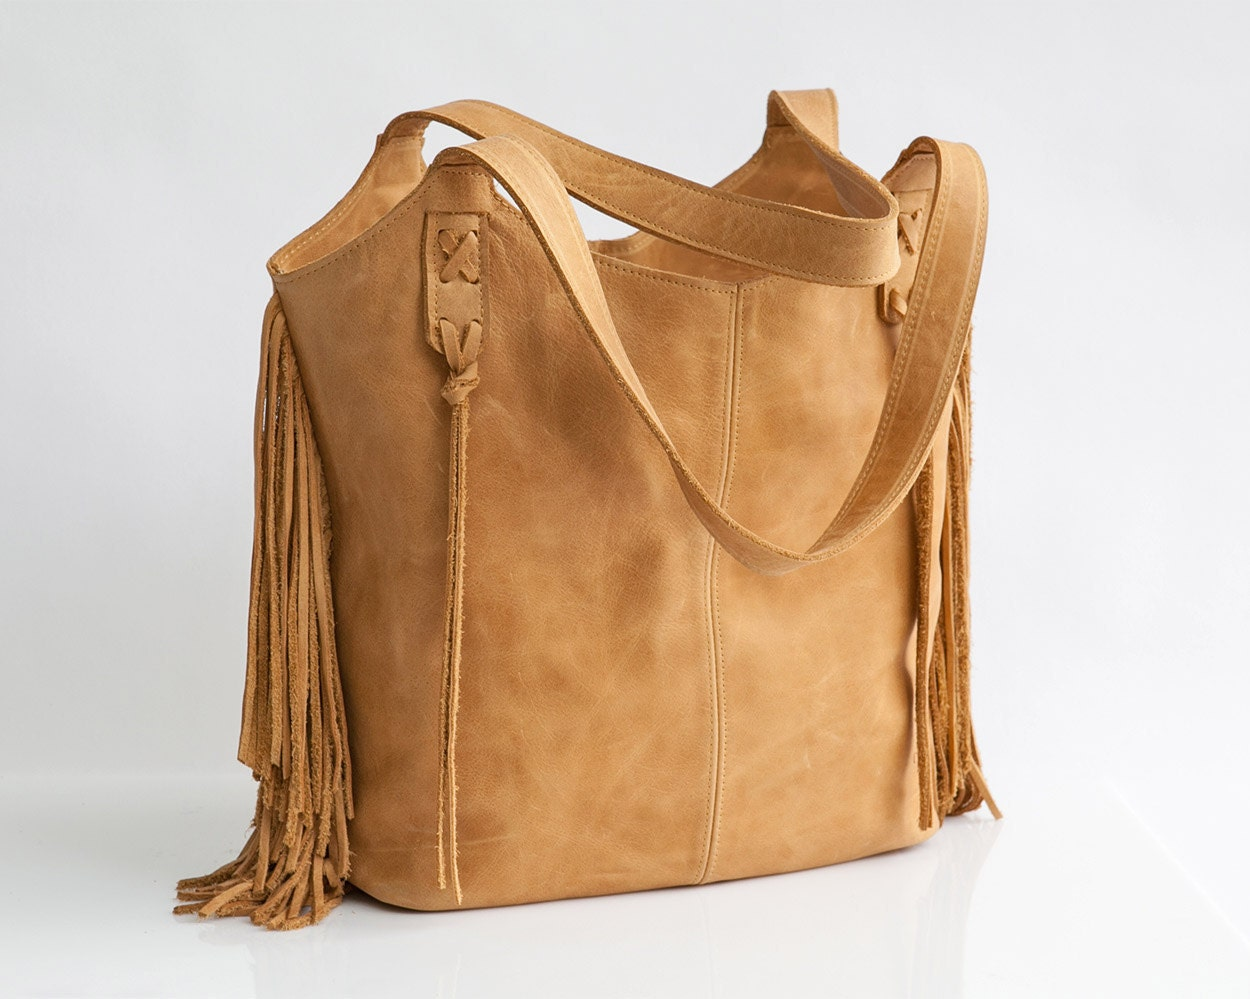 Large leather tote bags for travel – New trendy bags models photo blog